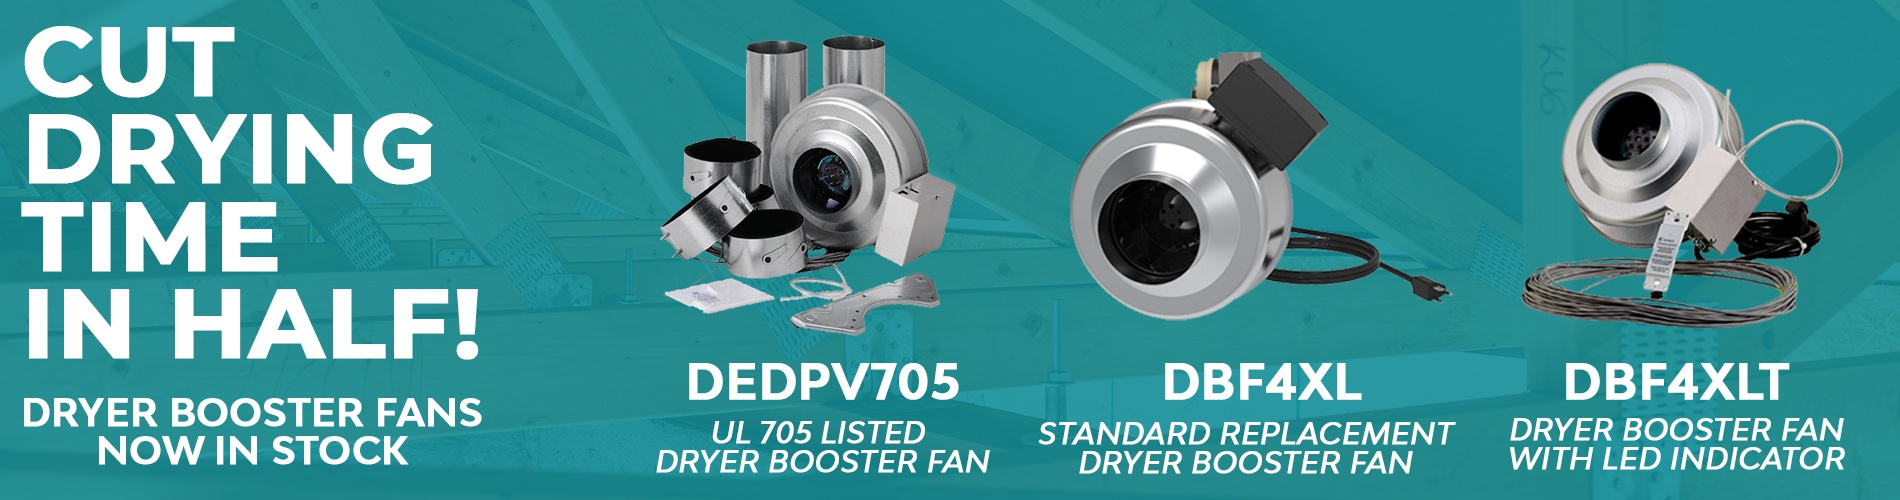 Dryer Booster Fans